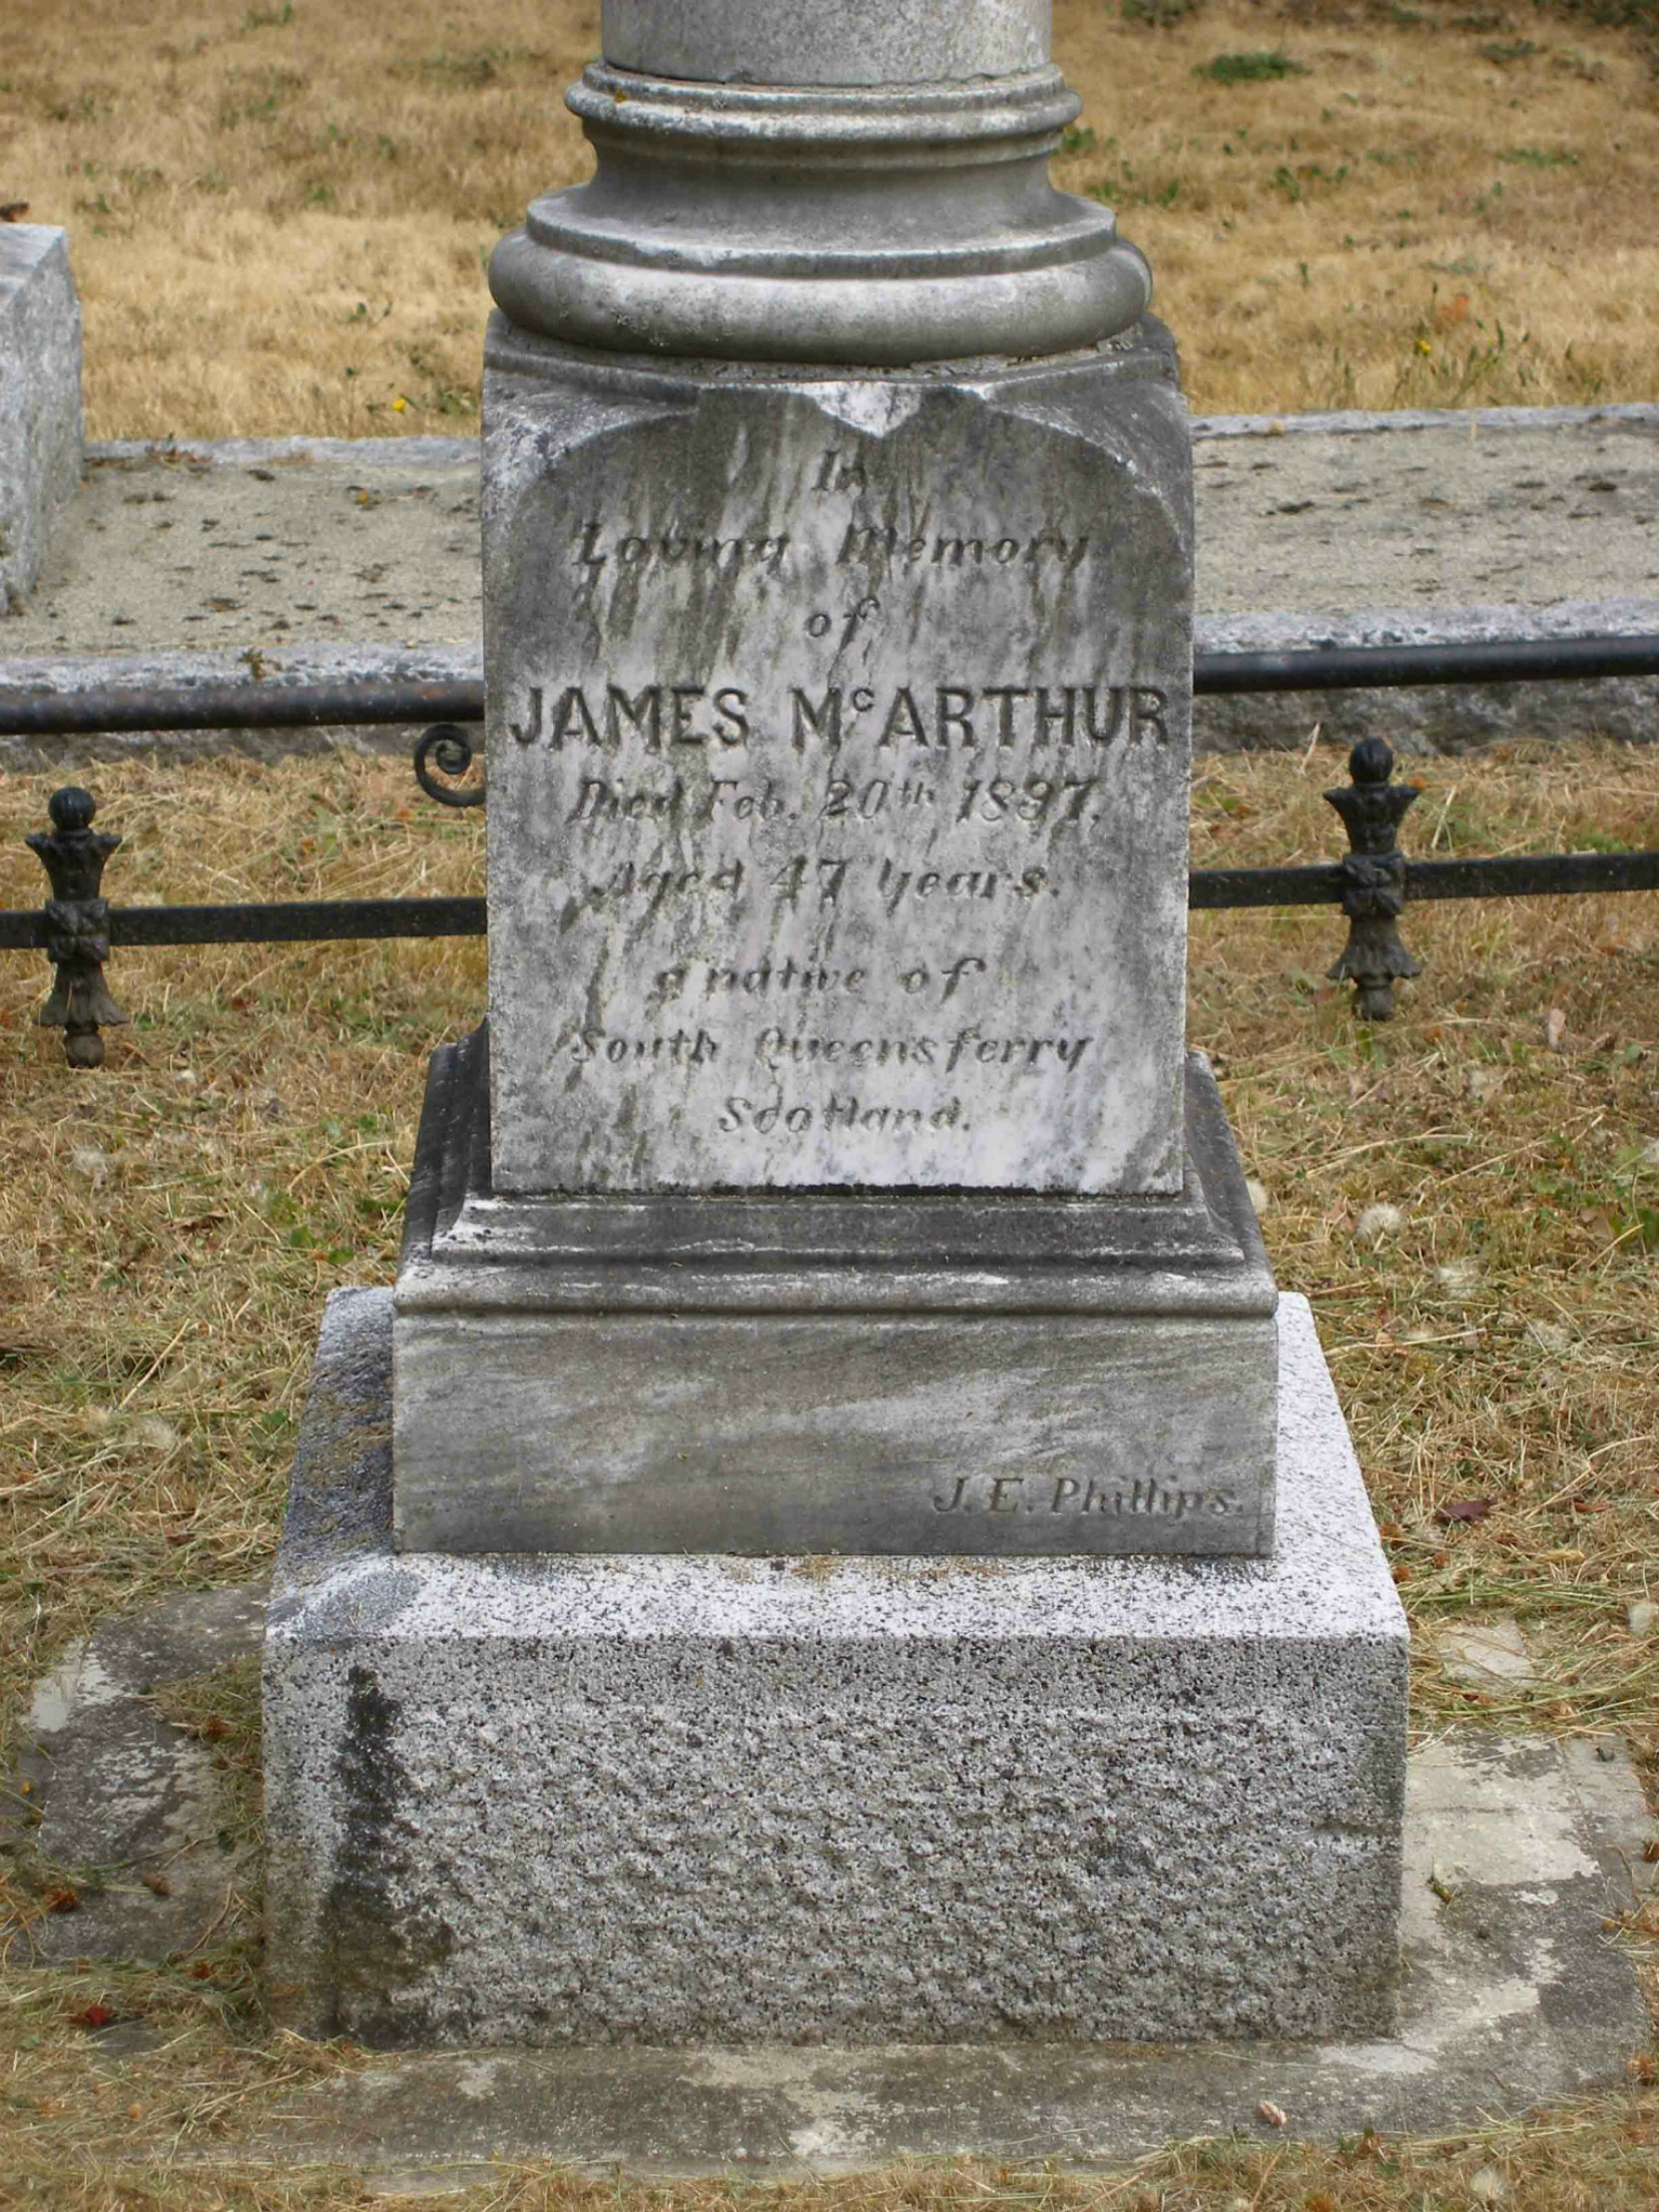 Inscription on James McArthur grave, Ross Bay Cemetery, Victoria, B.C.